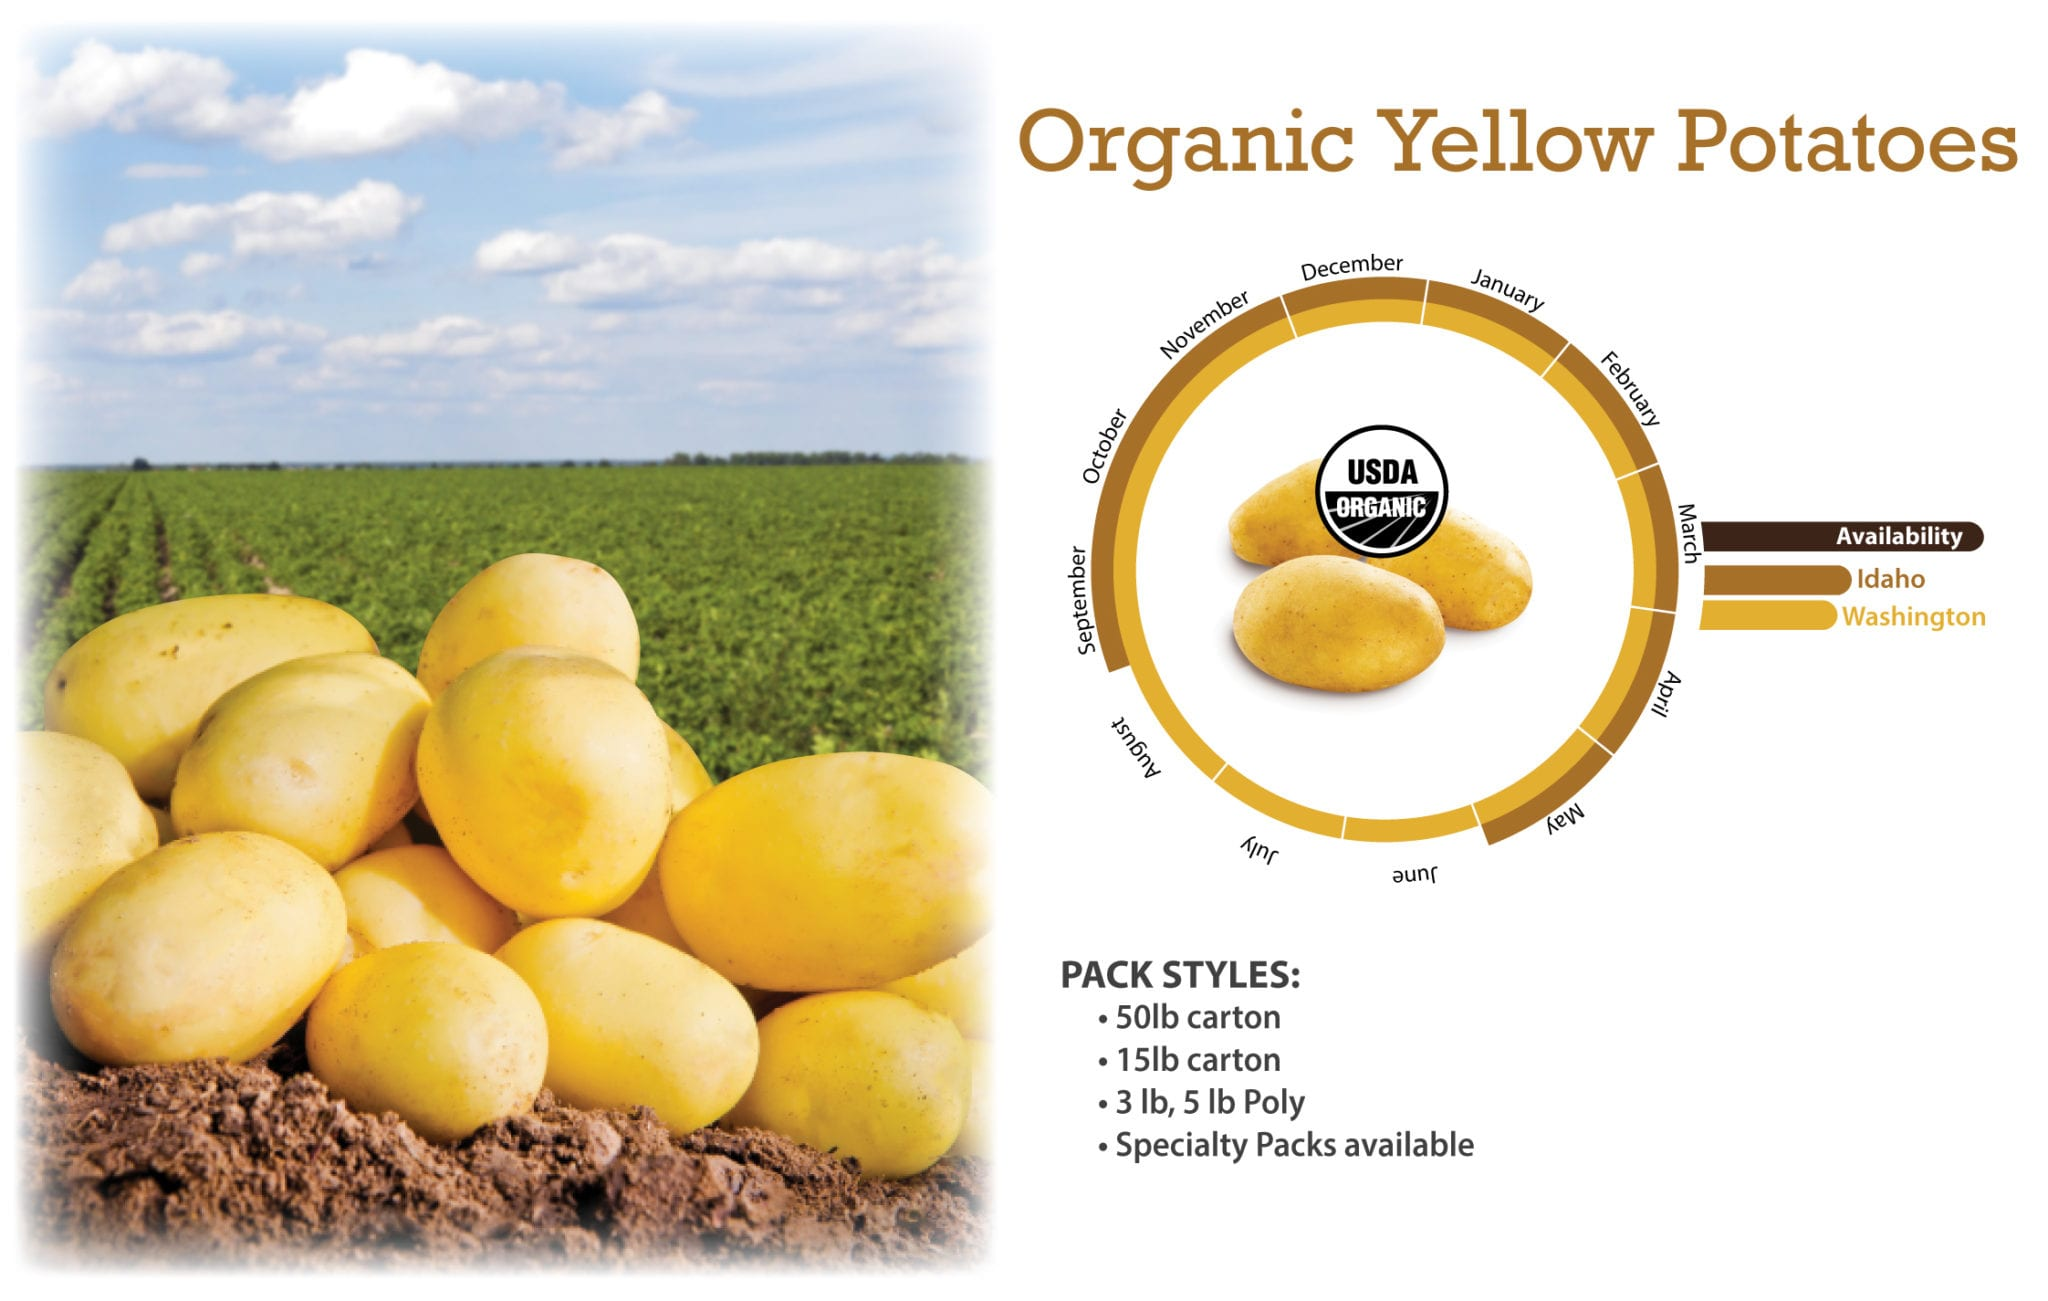 Organic Yellow Potatoes